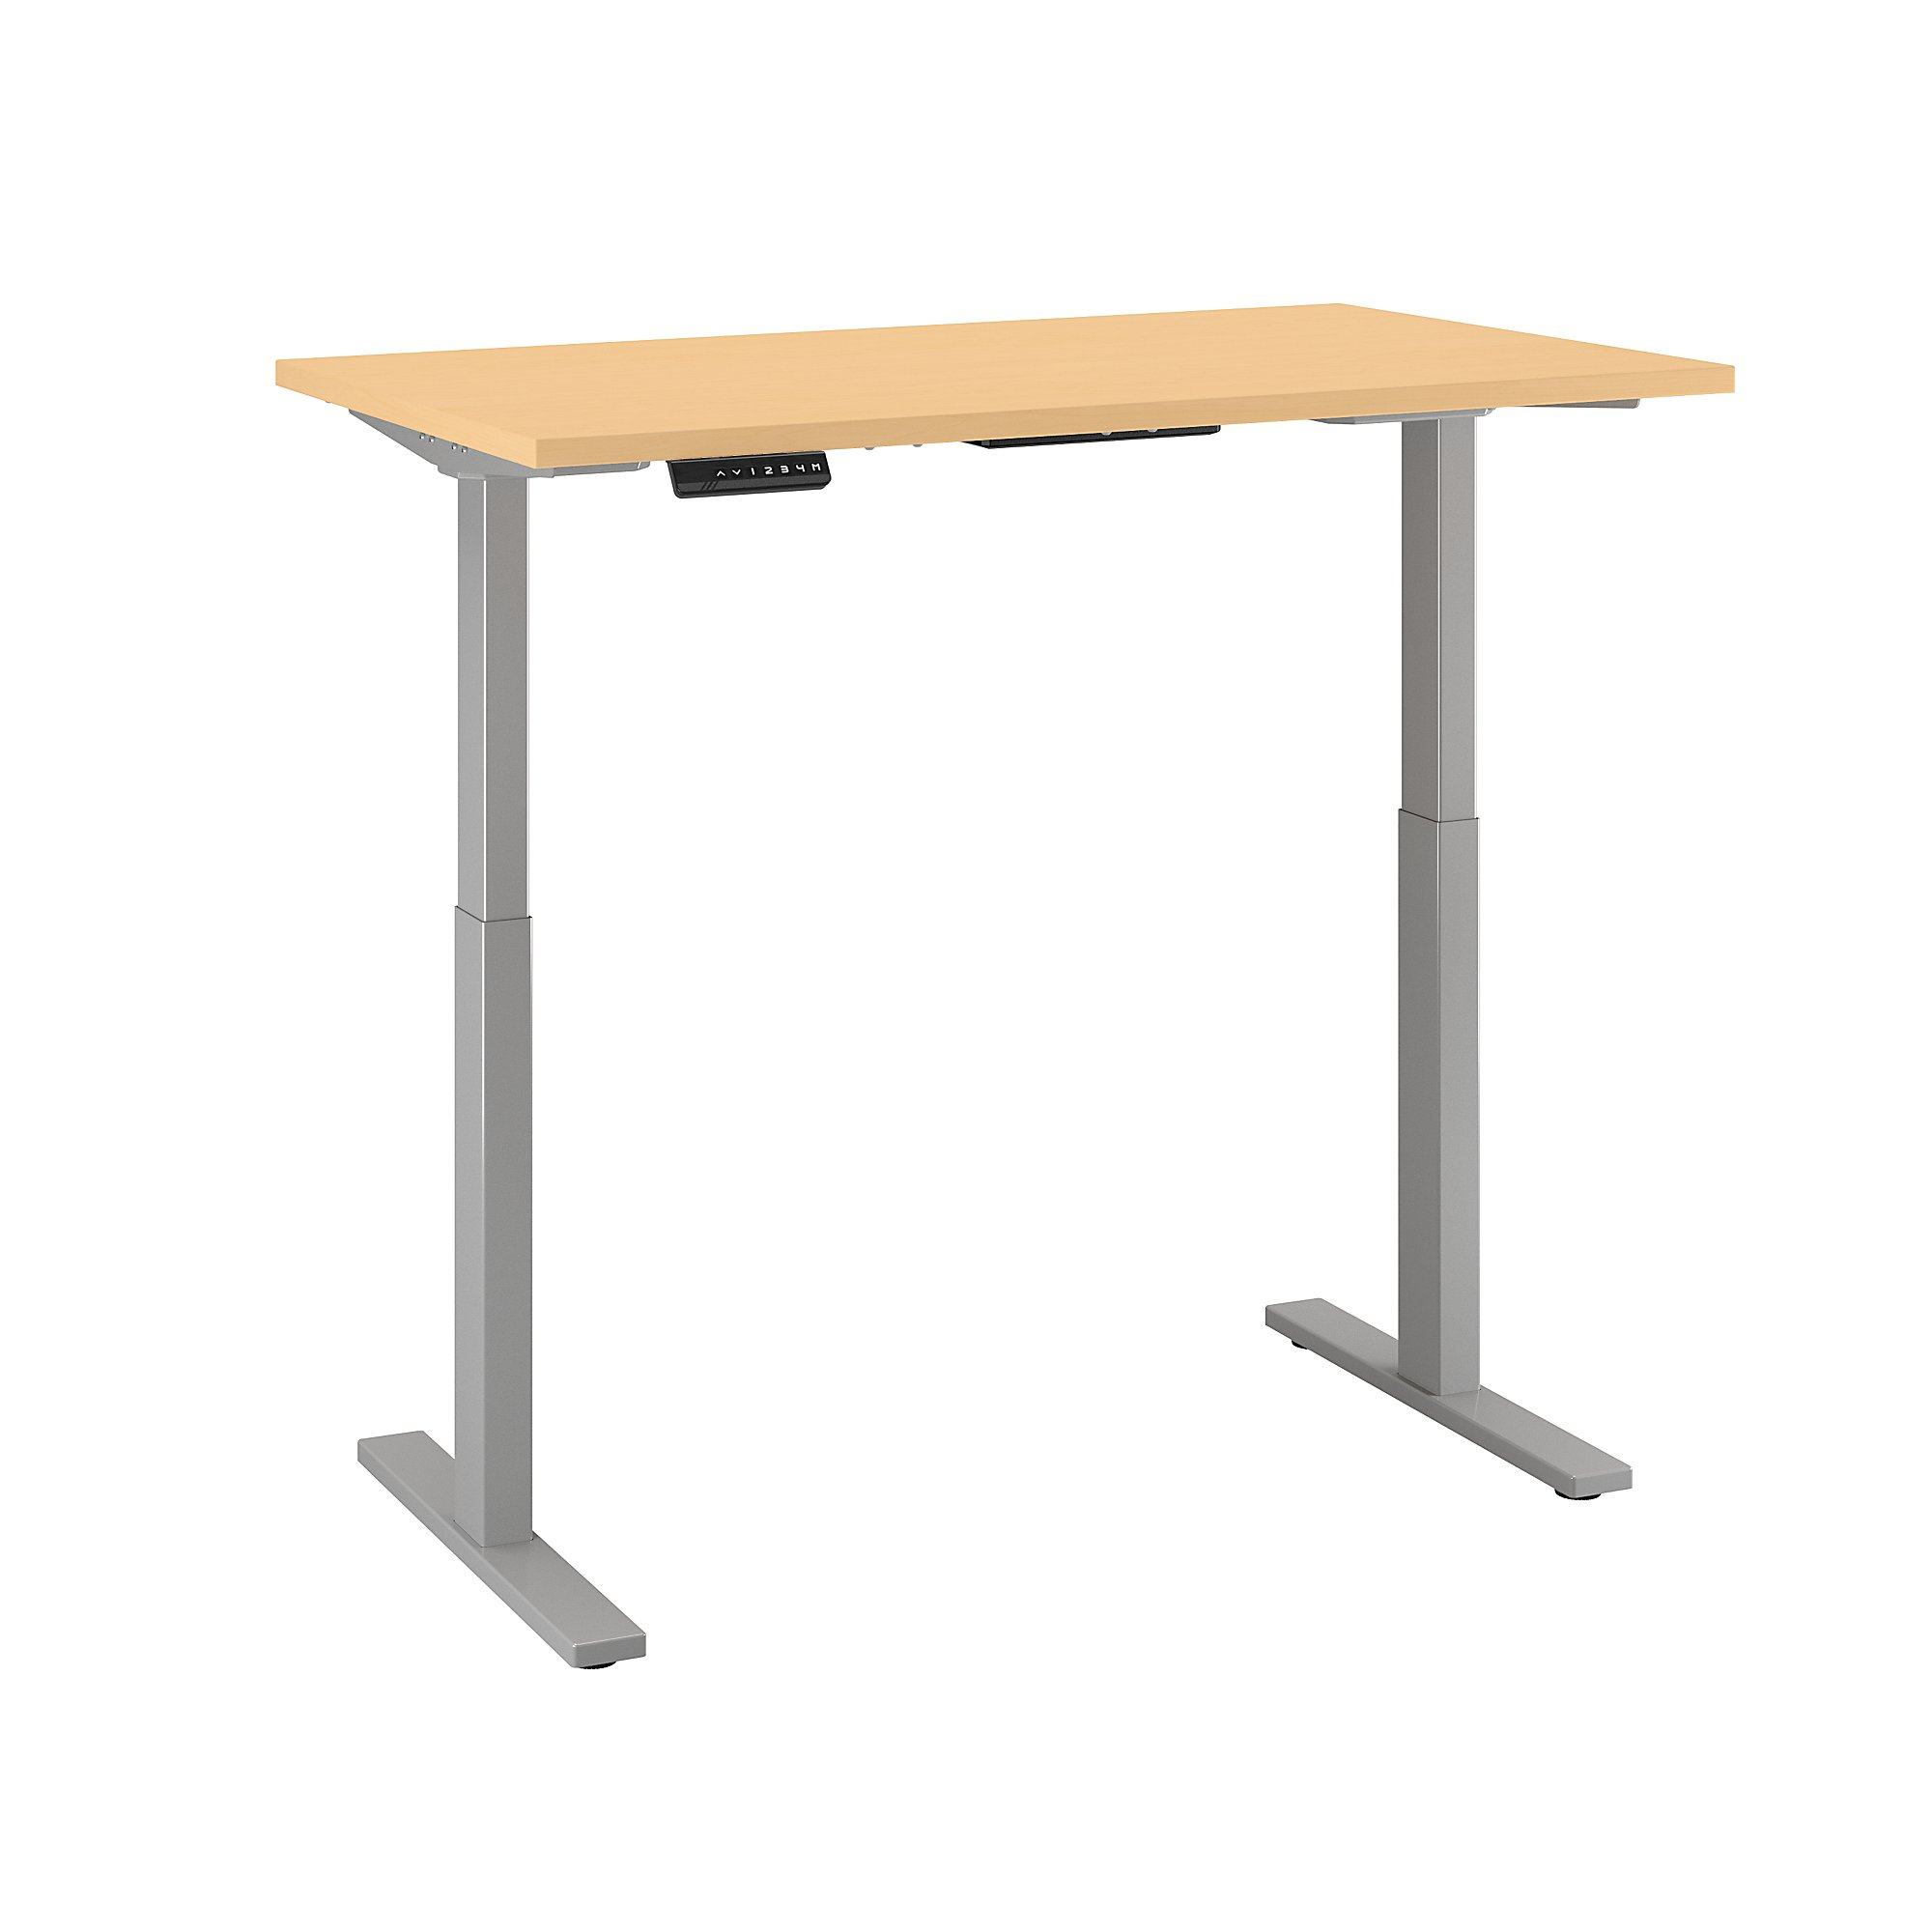 Sit stand desk adjustable CUB M6S4830ACSK FBB